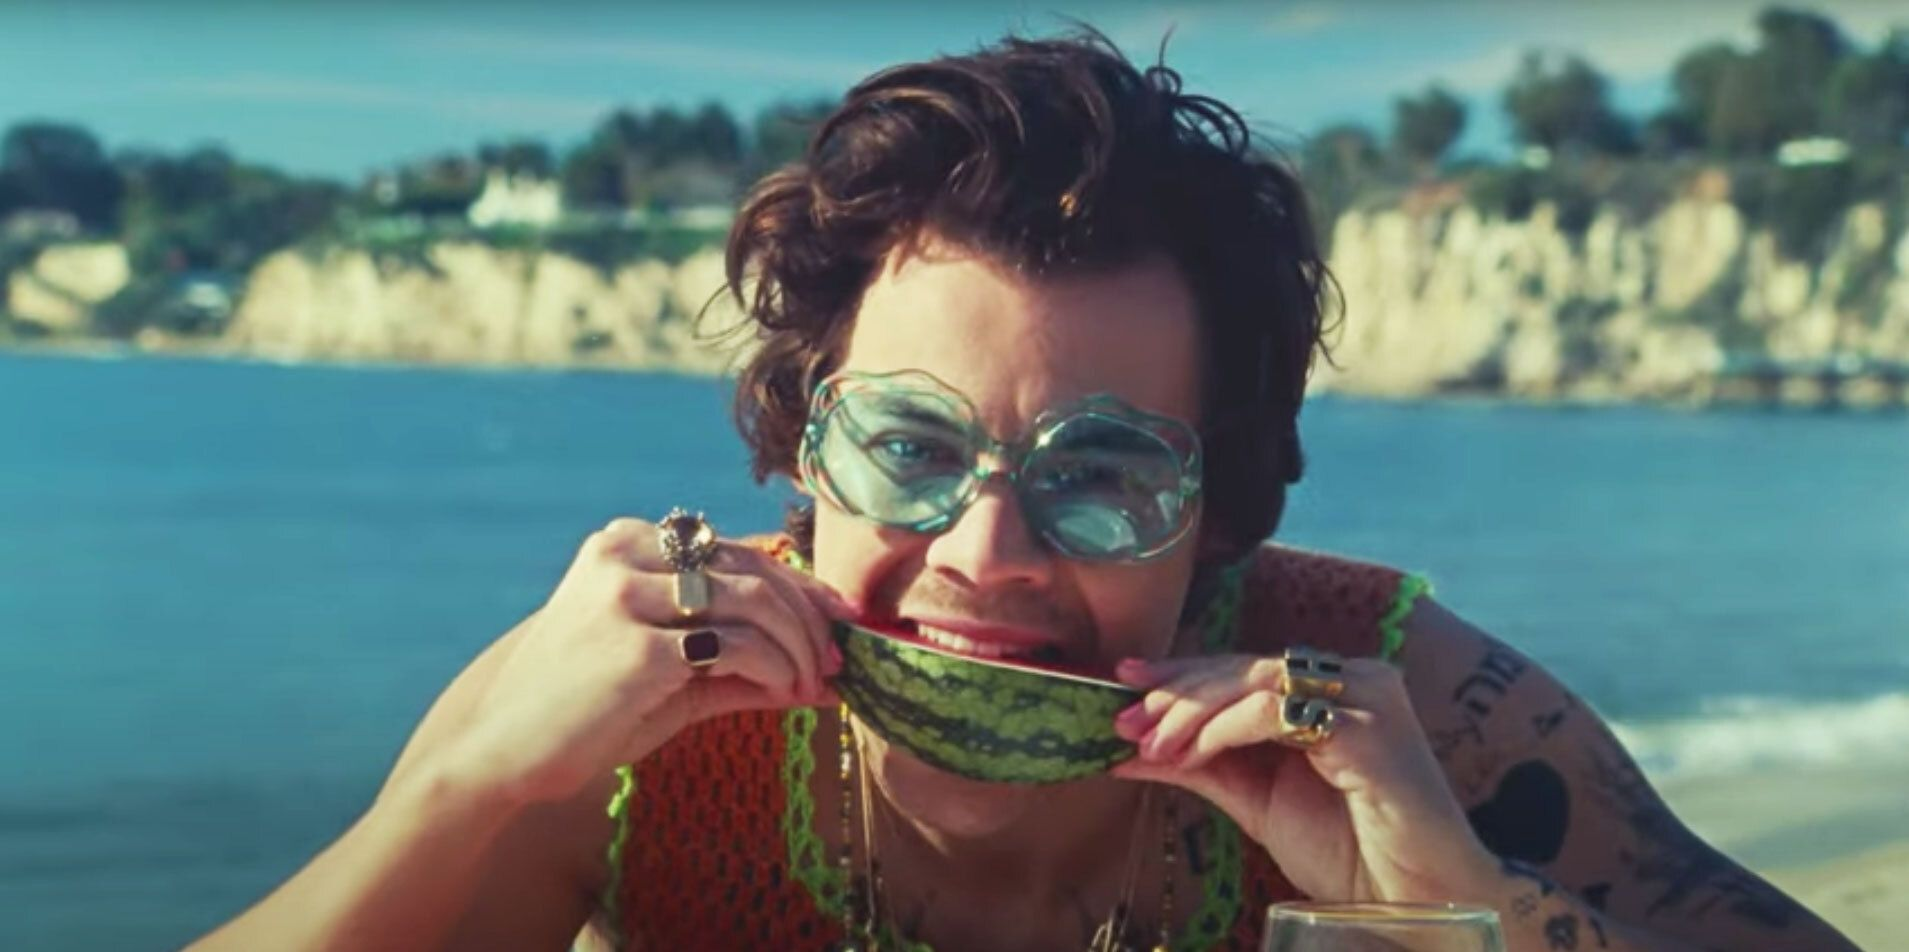 Harry Styles Touching a Watermelon Is Making People Extremely Horny